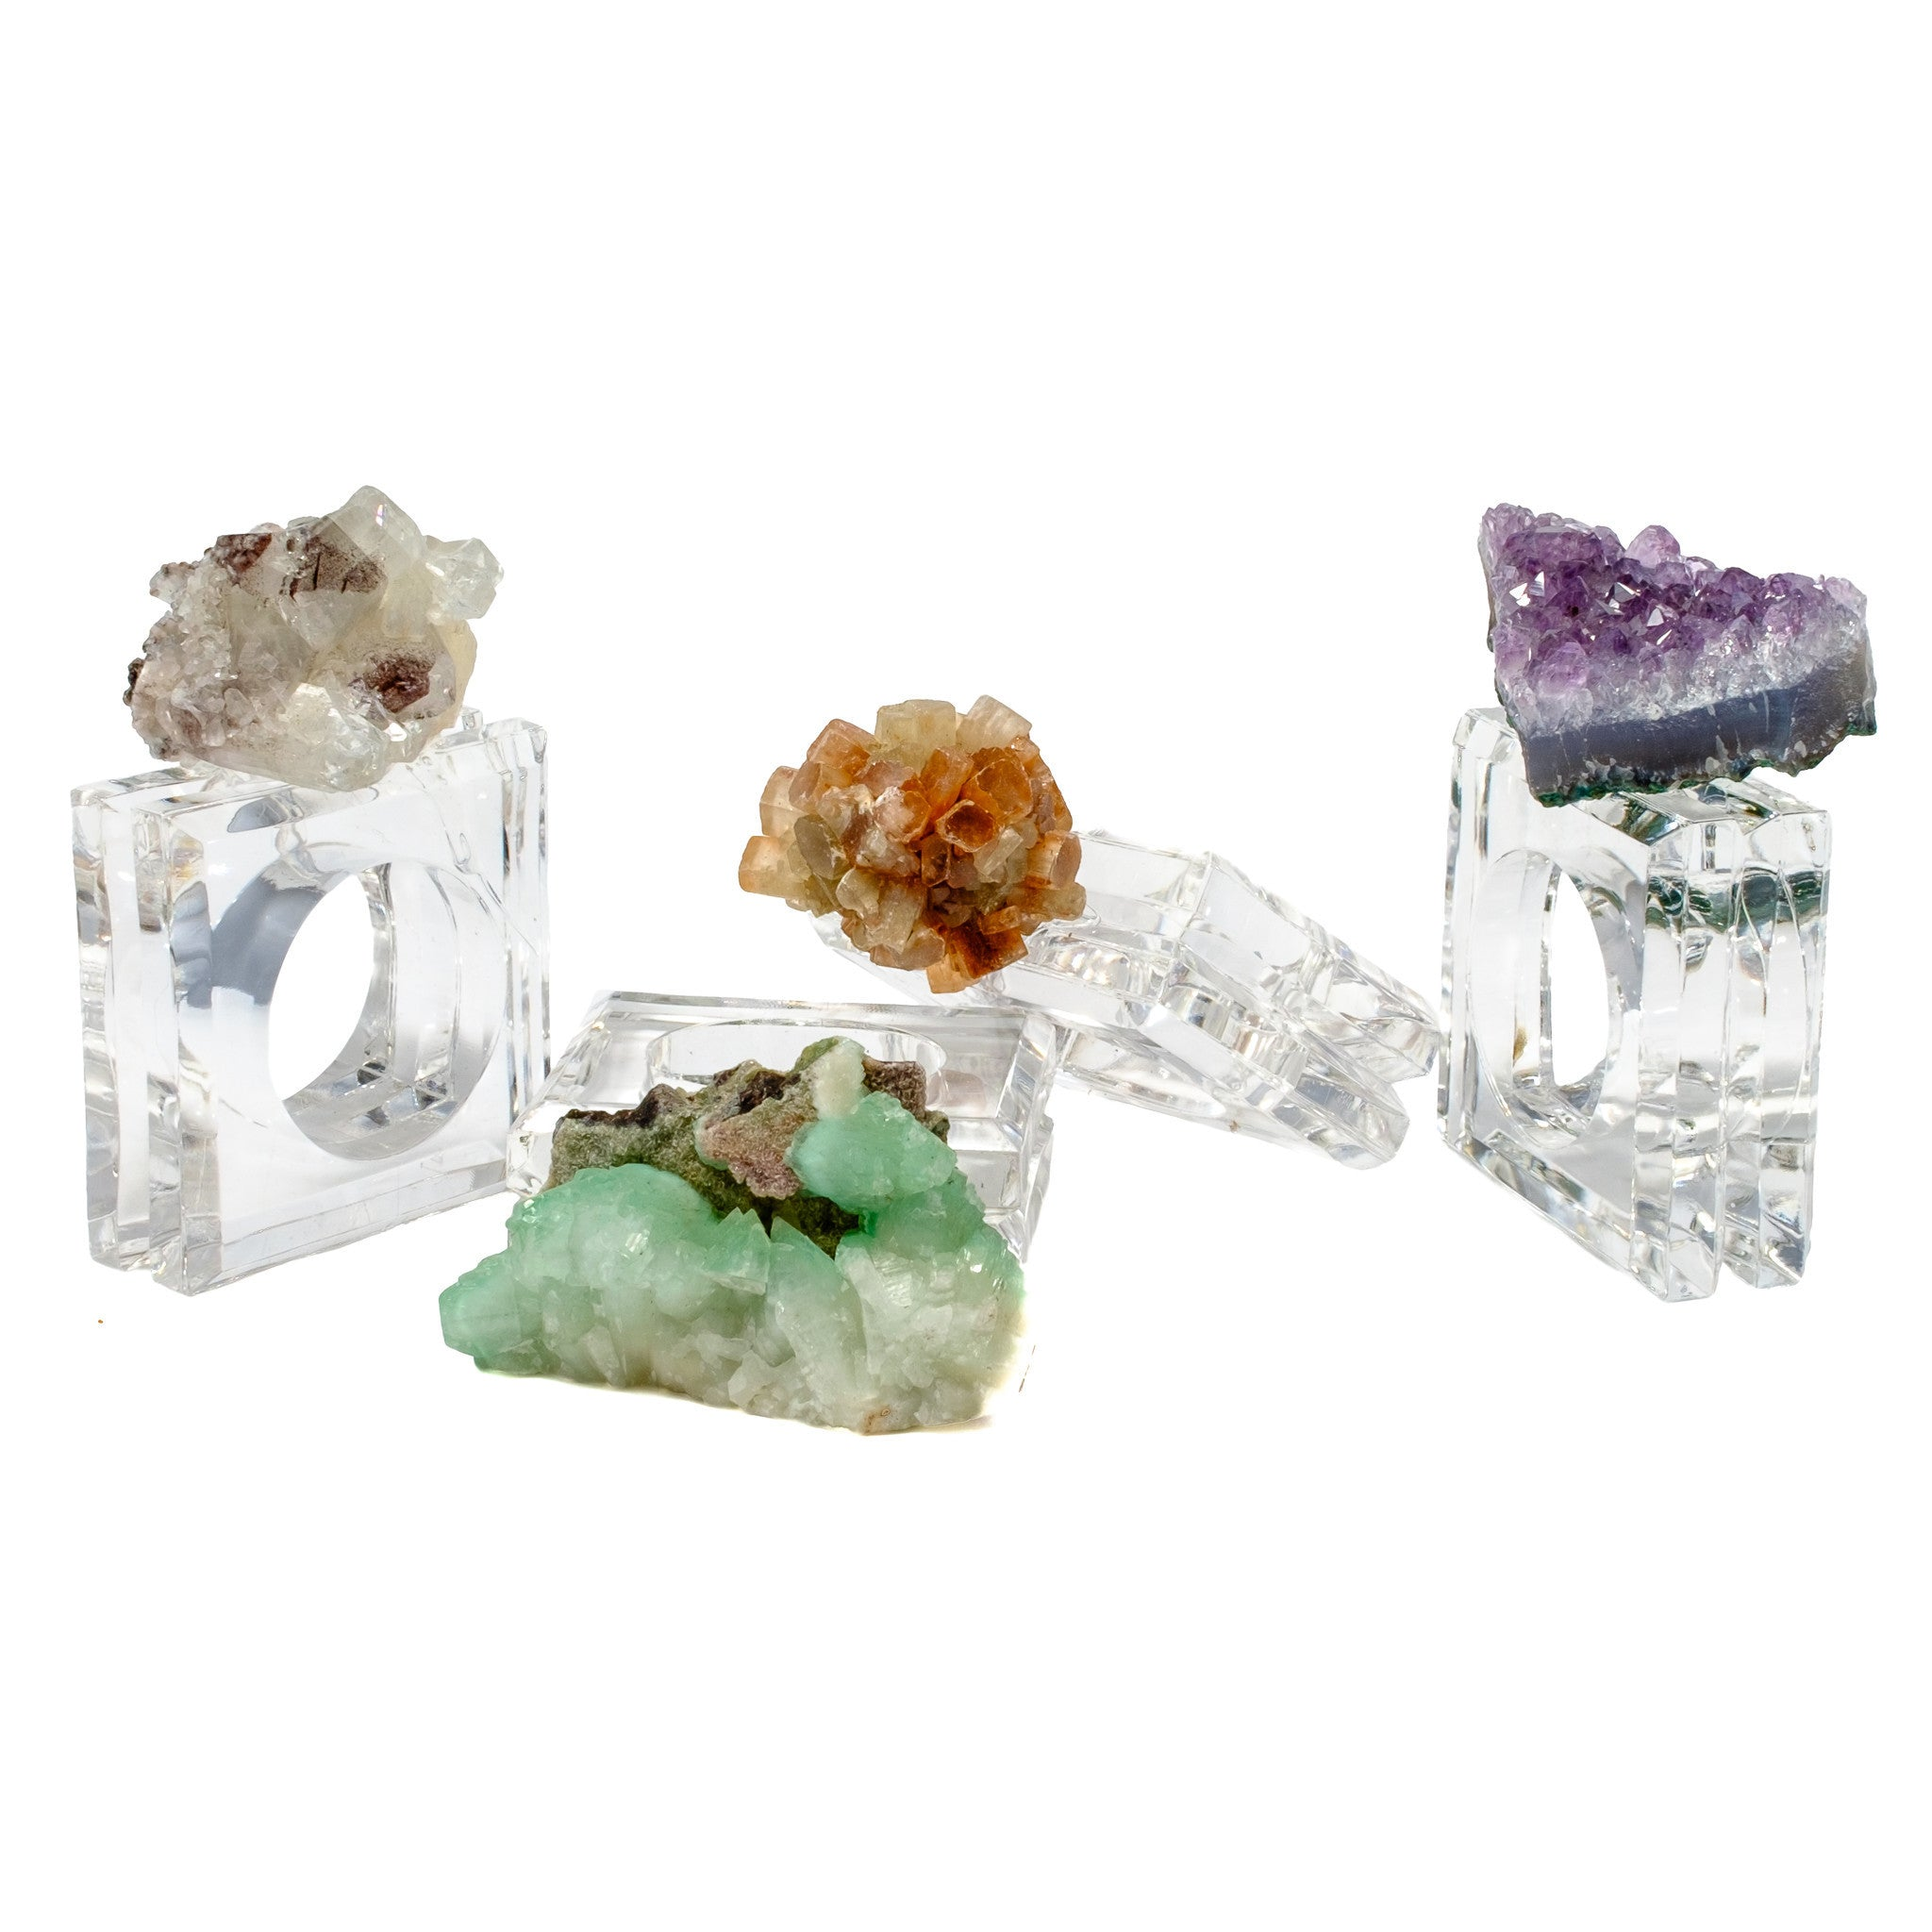 (set of 4) Mixed Mineral Napkin Rings